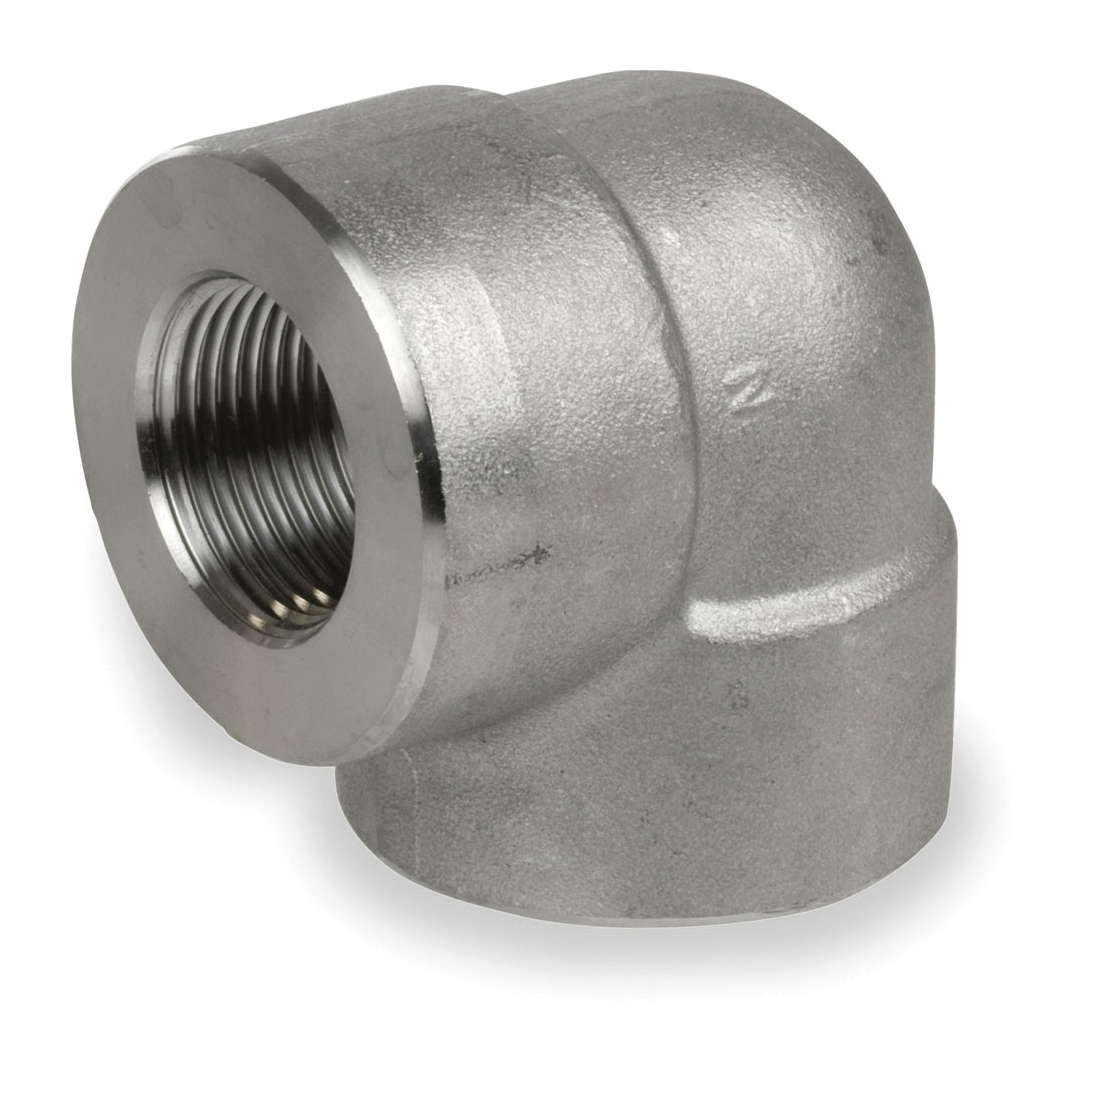 Smith-Cooper® S4034E 020 90 deg Elbow, 2 in, Threaded, 3000 lb, 304L Stainless Steel